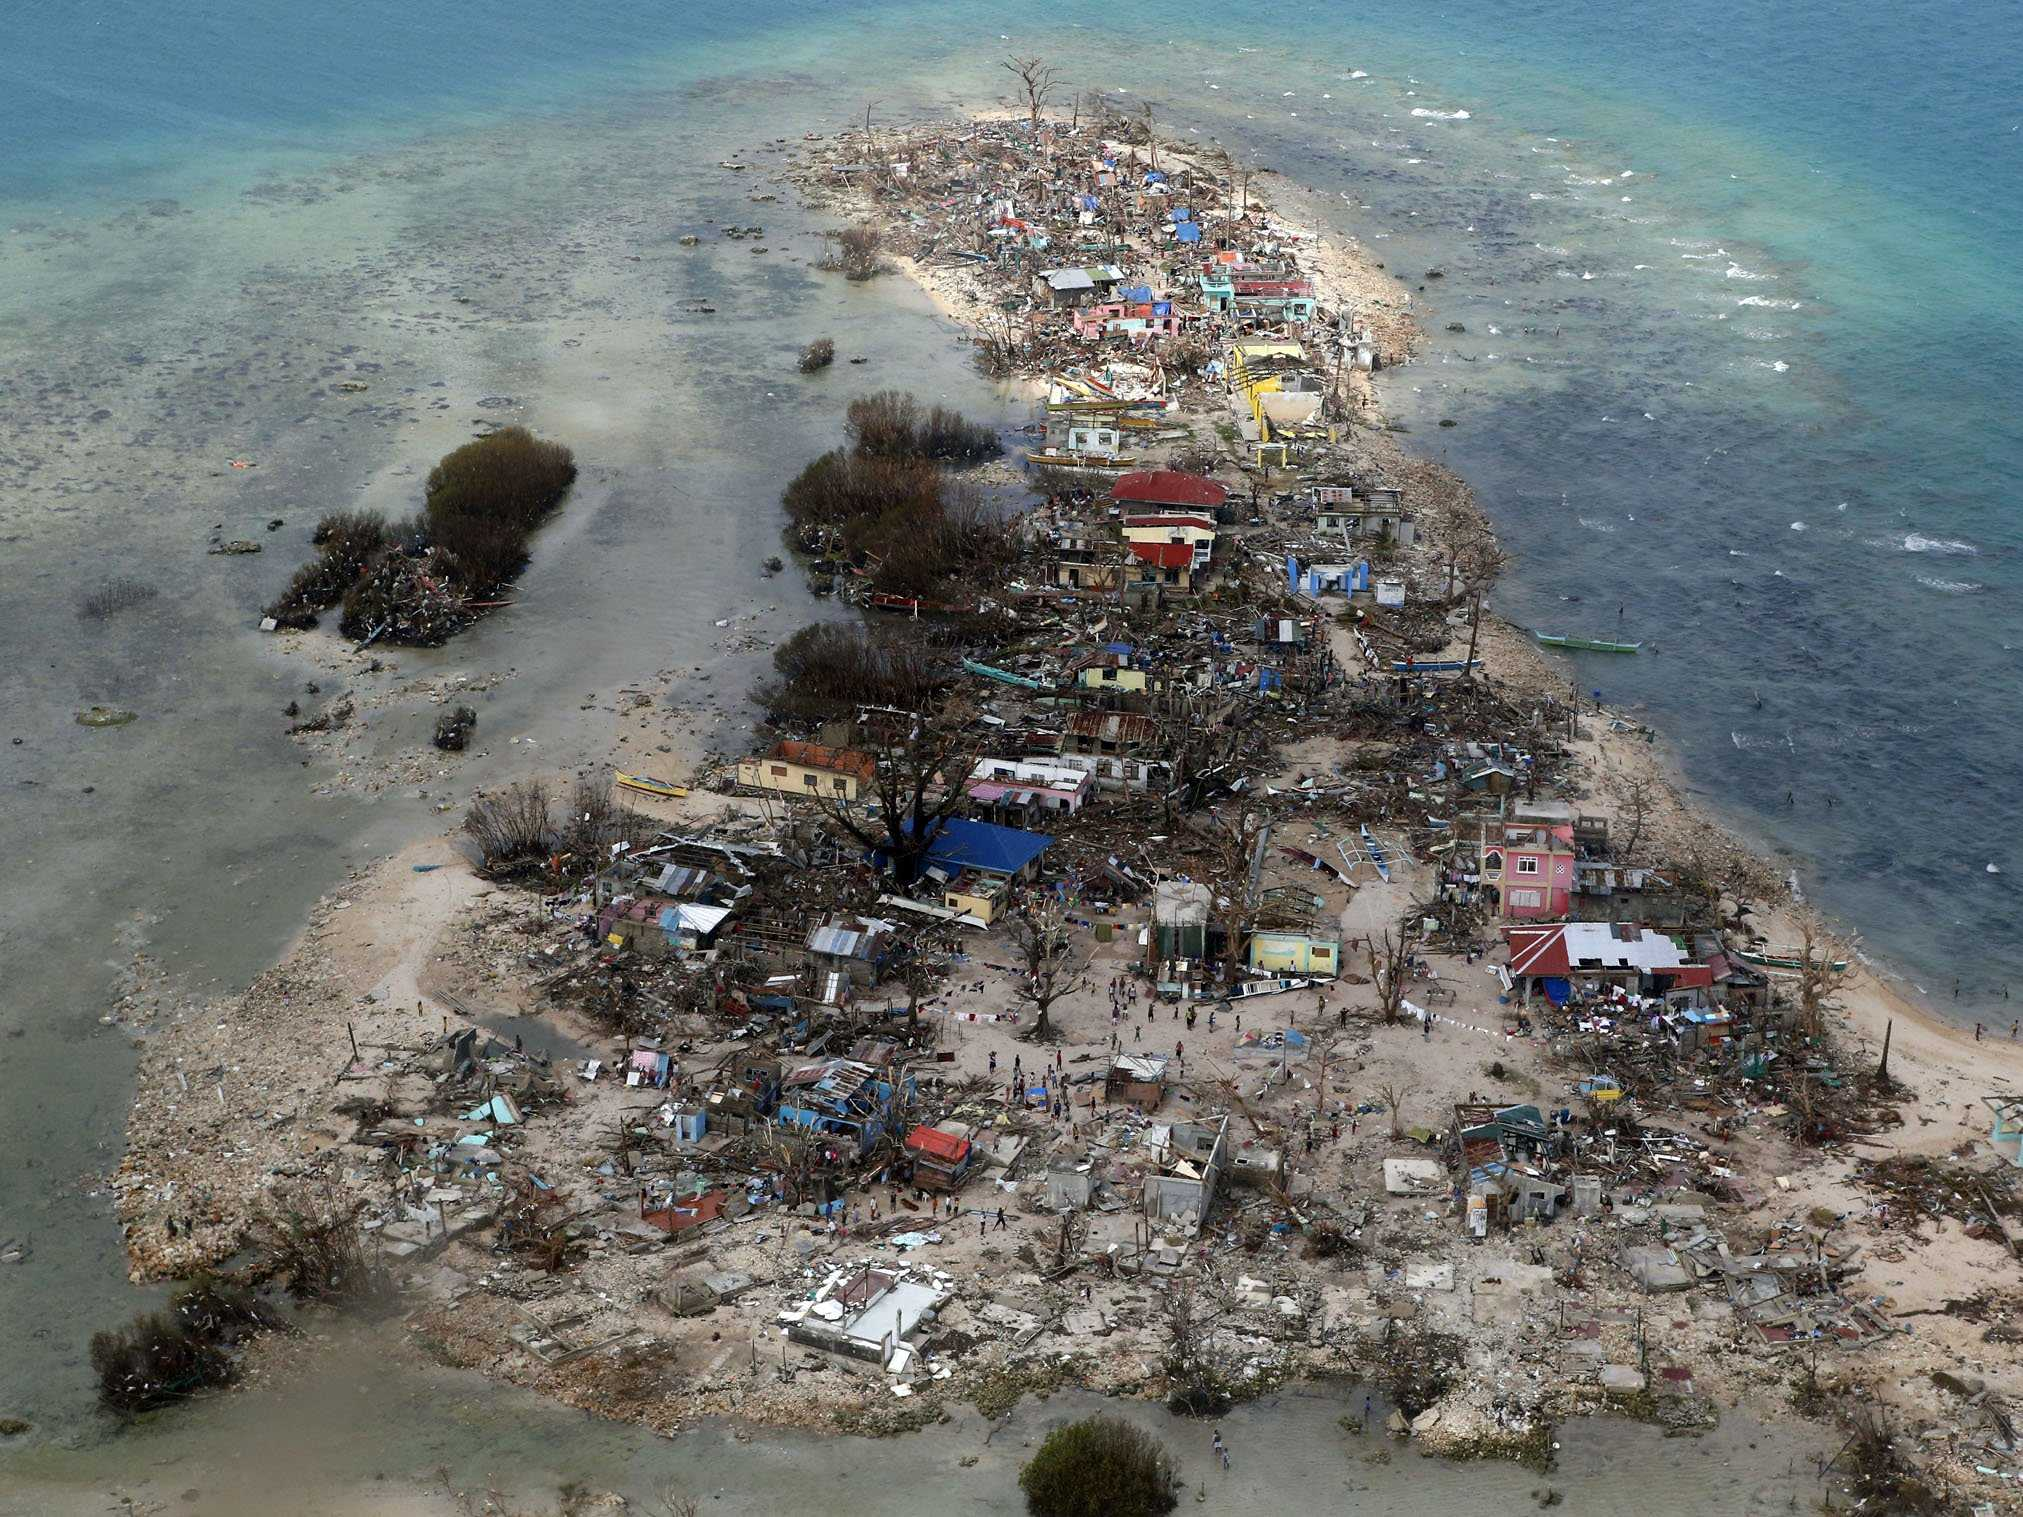 An aerial view of a coastal town, devastated by super Typhoon Haiyan, in Samar province in central Philippines November 11, 2013. Dazed survivors of super Typhoon Haiyan that swept through the central Philippines killing an estimated 10,000 people begged for help and scavenged for food, water and medicine on Monday, threatening to overwhelm military and rescue resources. (image by REUTERS/Erik De Castro)